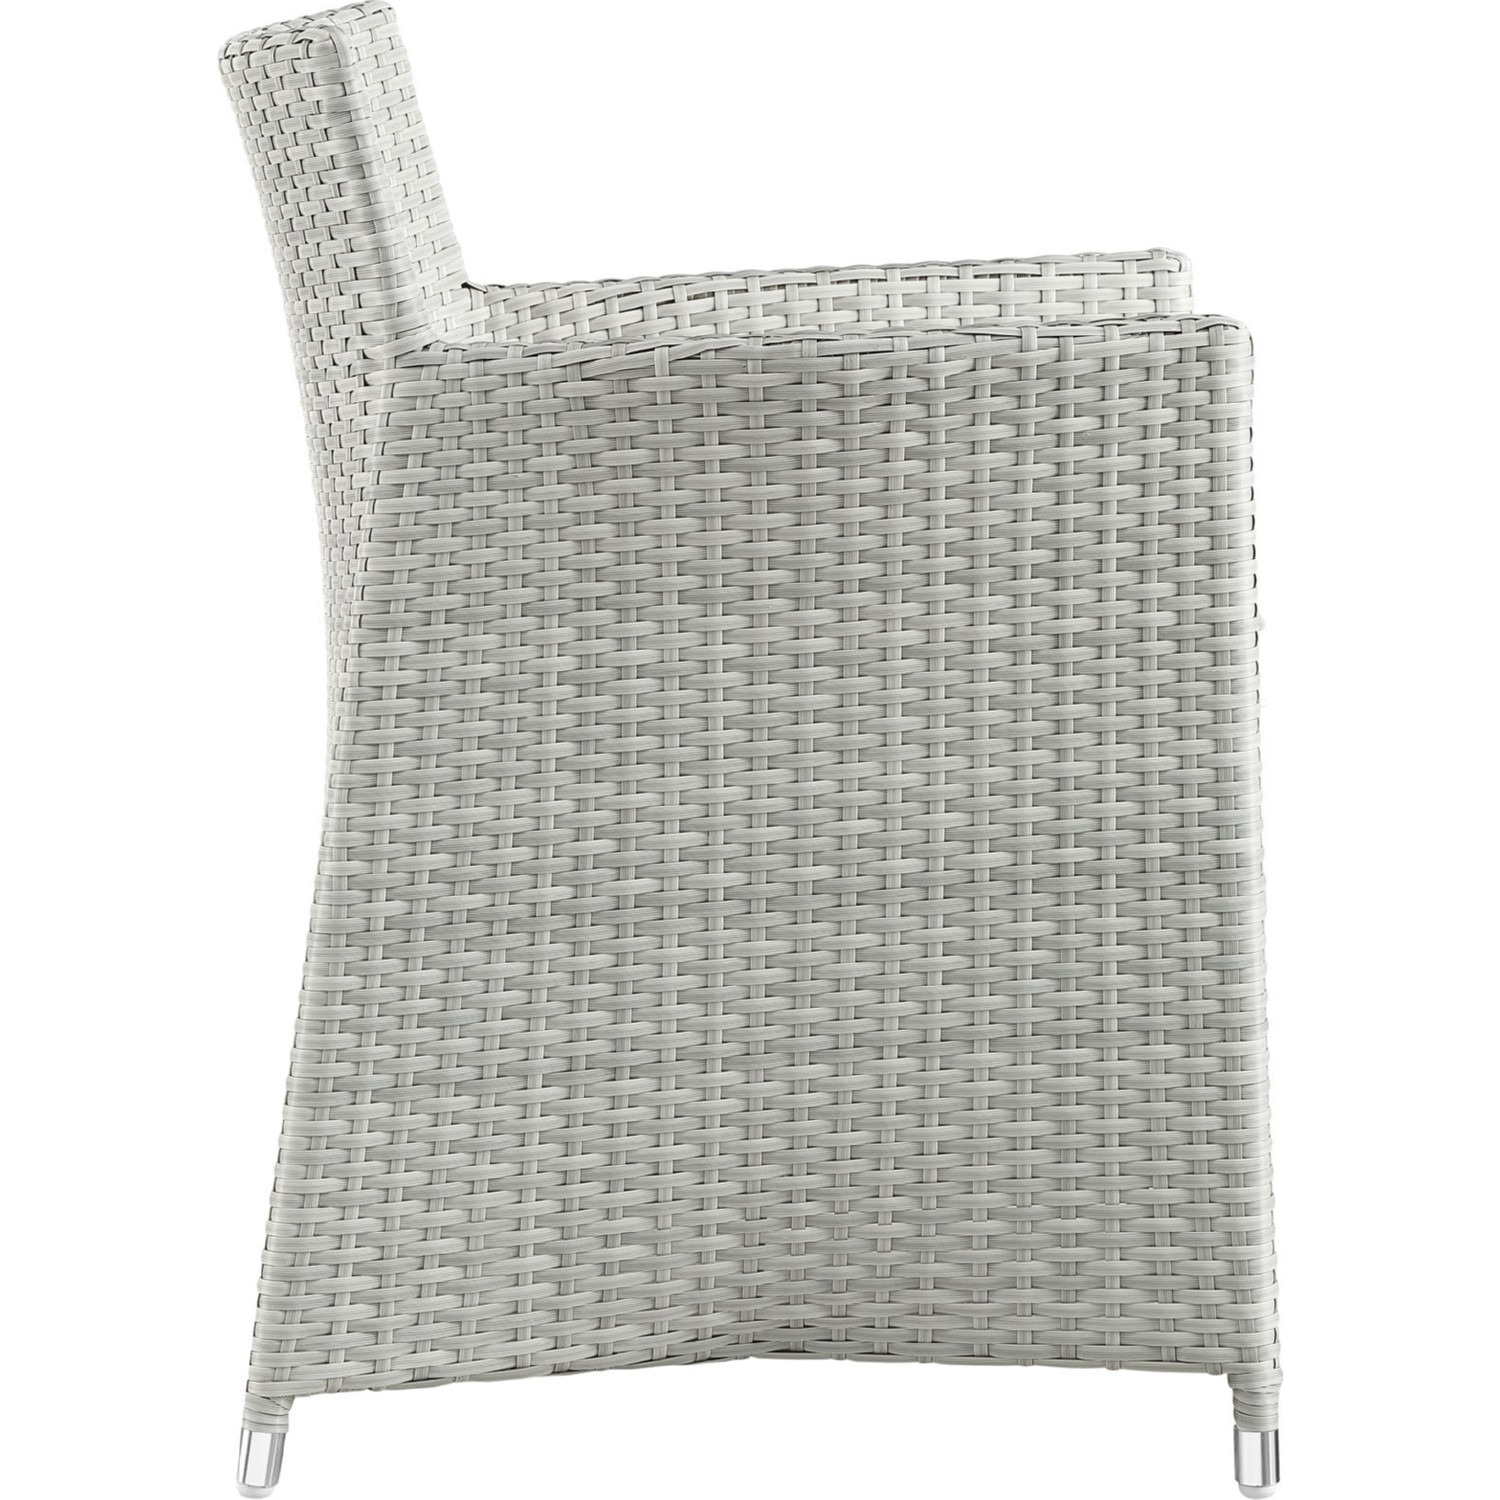 Modern 5-Piece Dining Set In Gray Rattan Weave - image-2